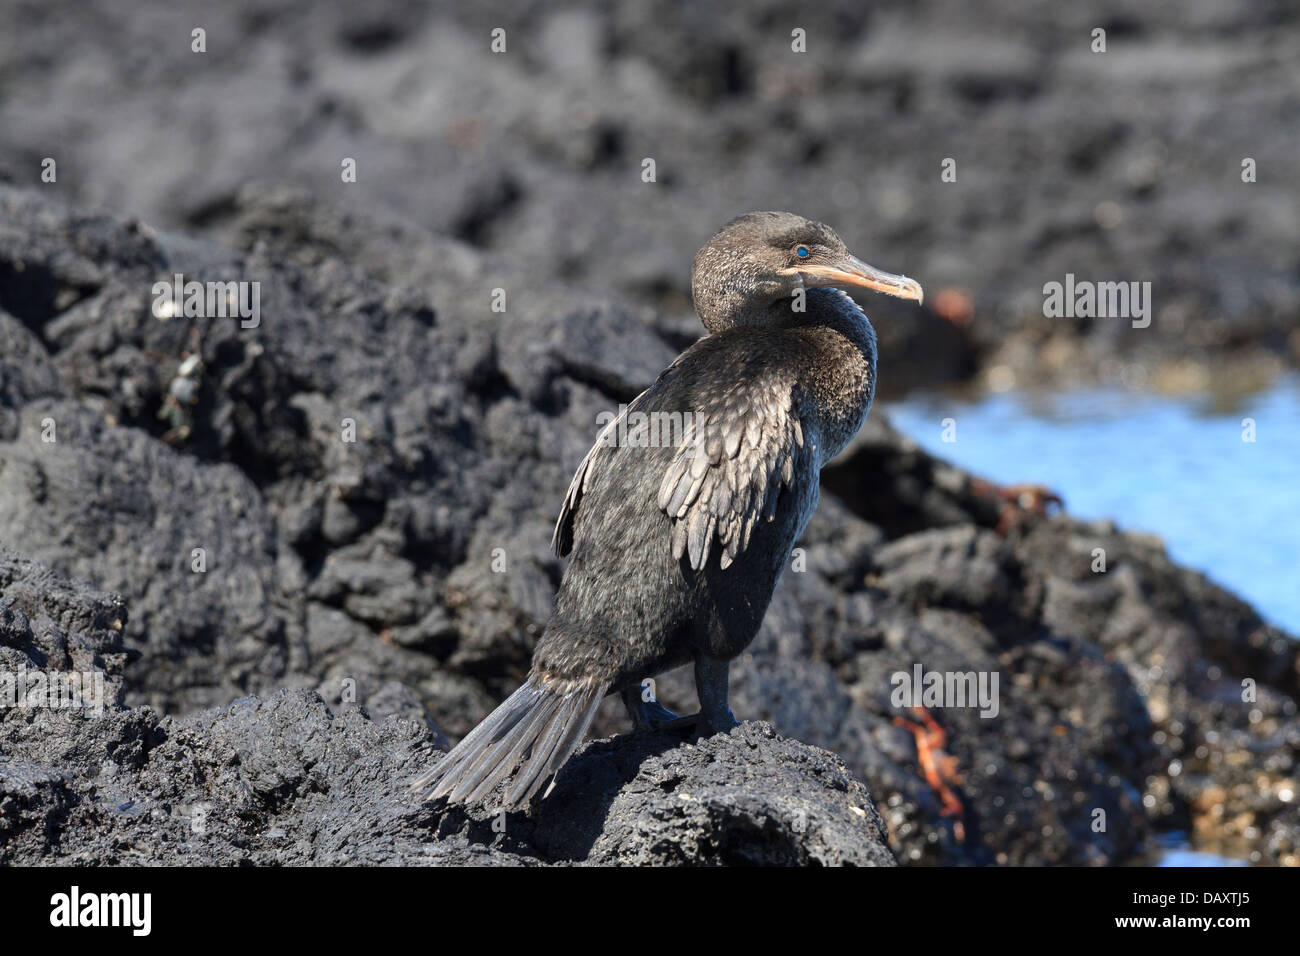 Flightless Cormorant, Phalacrocorax harrisi, Punta Moreno, Isabela Island, Galapagos Islands, Ecuador Stock Photo